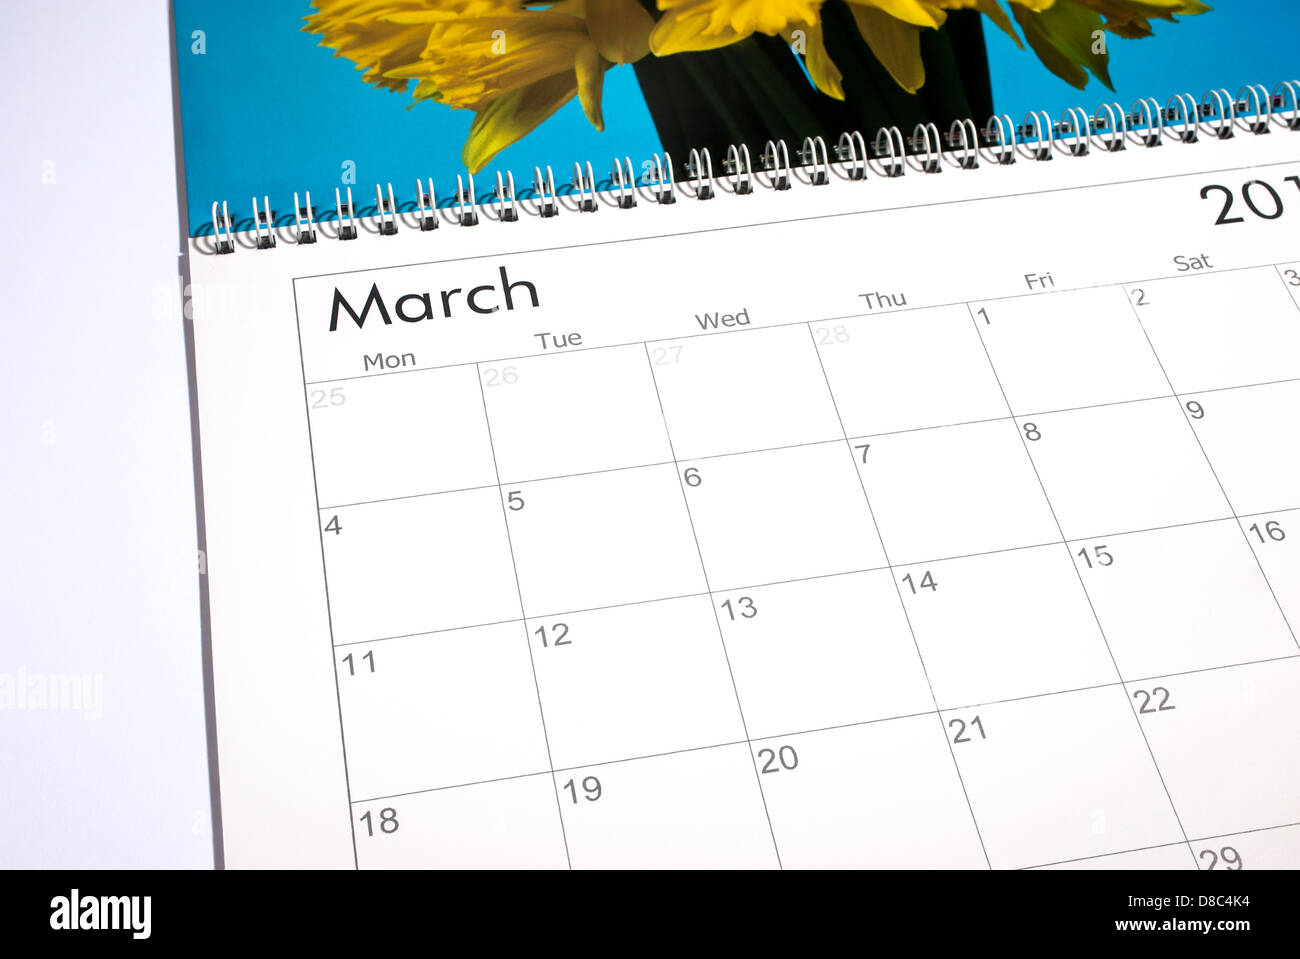 Blank calendar page March 2013 - Stock Image